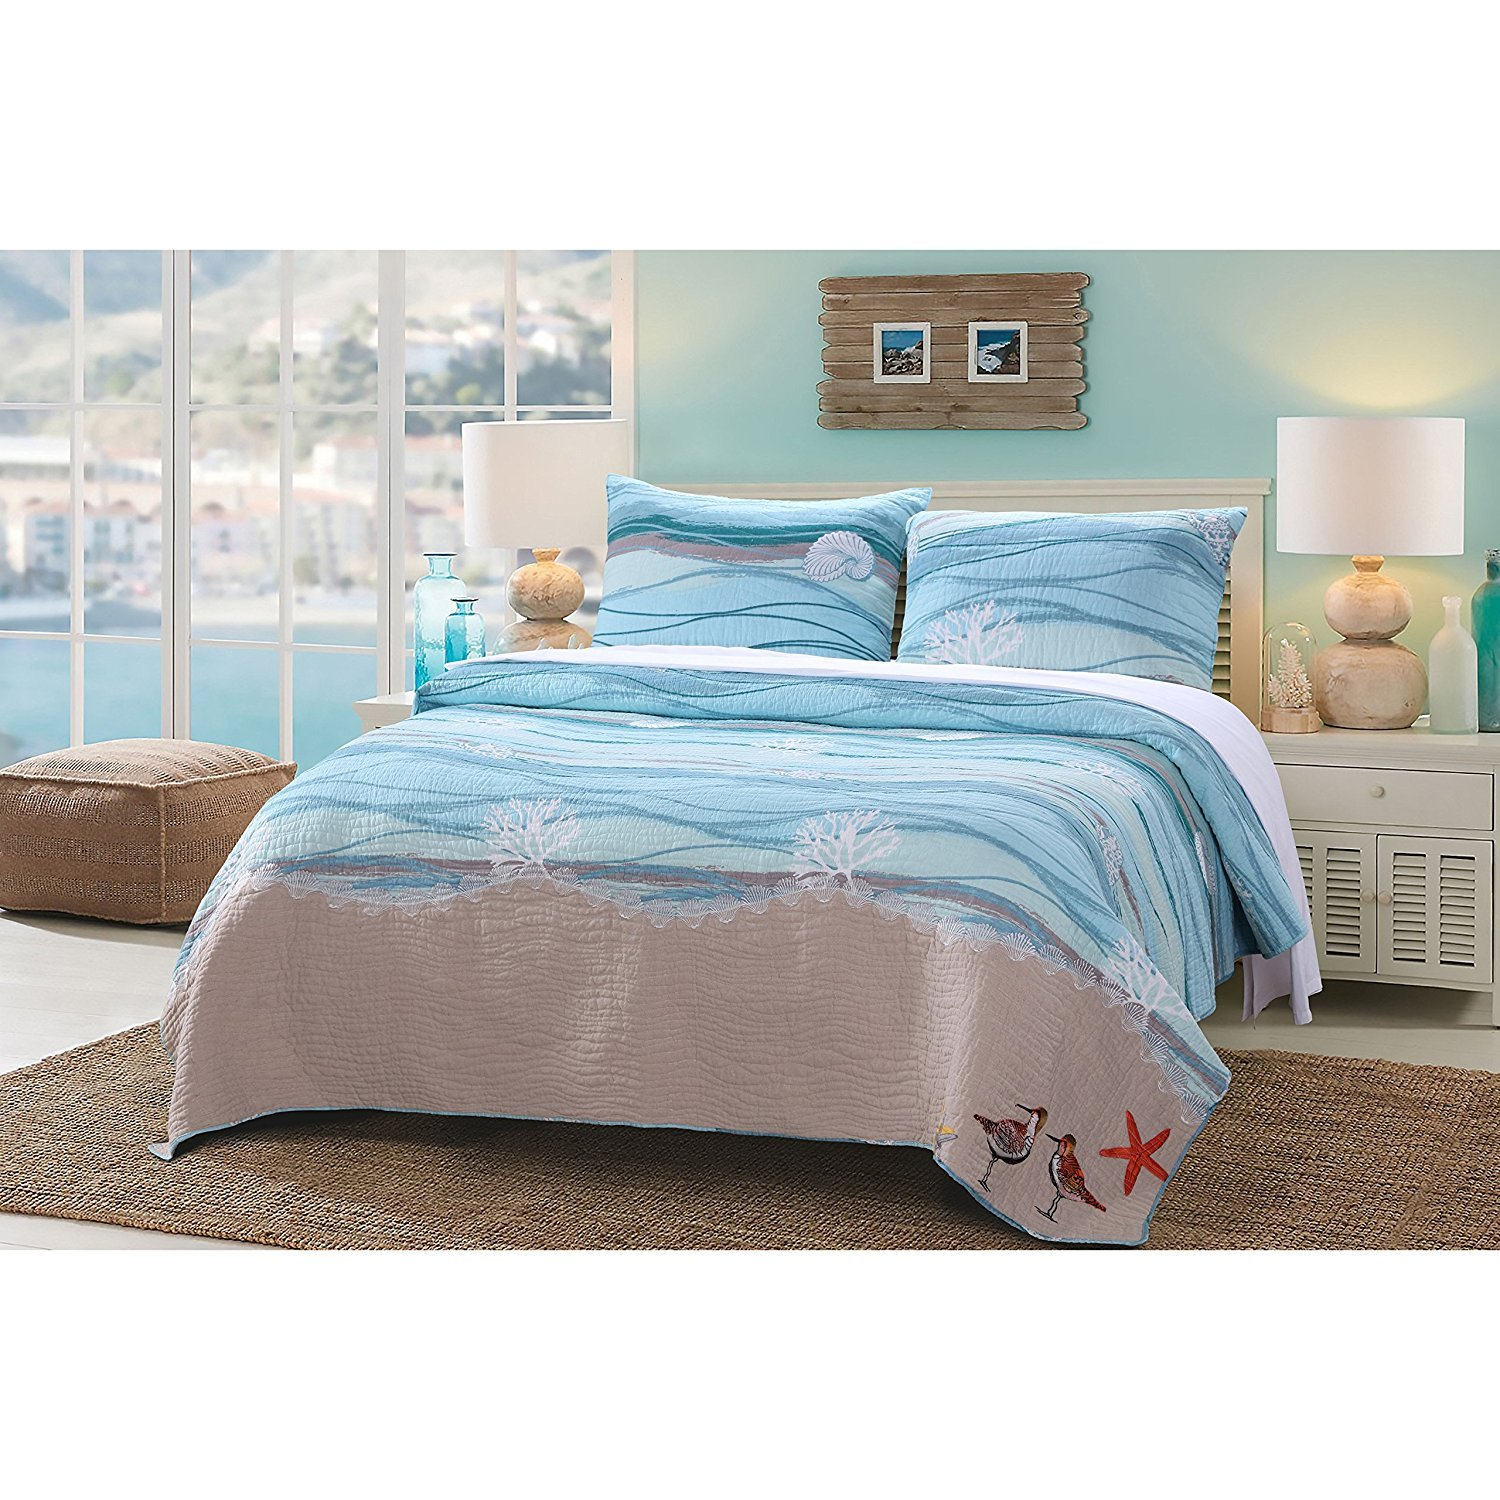 3pc Blue Nautical Full Queen Quilt Set, Cotton Linen Polyester, Turquoise Waves Star Fish Ocean Sea Weed Coral Birds Solid Color, White Sand Nature Coastal Beach Theme Bedding